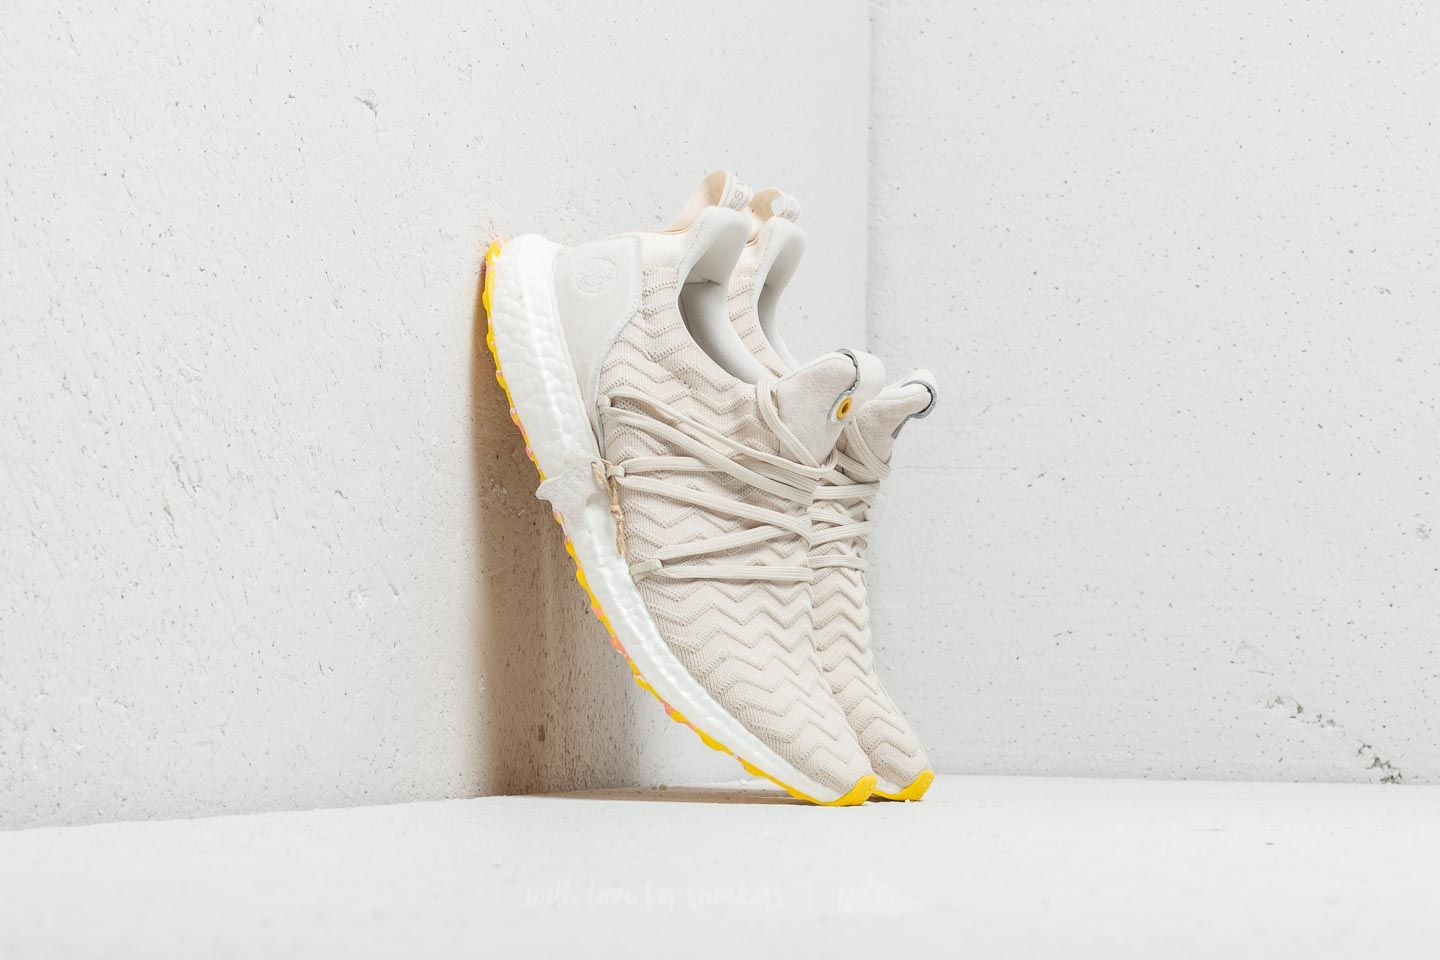 adidas Consortium x A Kind of Guise UltraBOOST